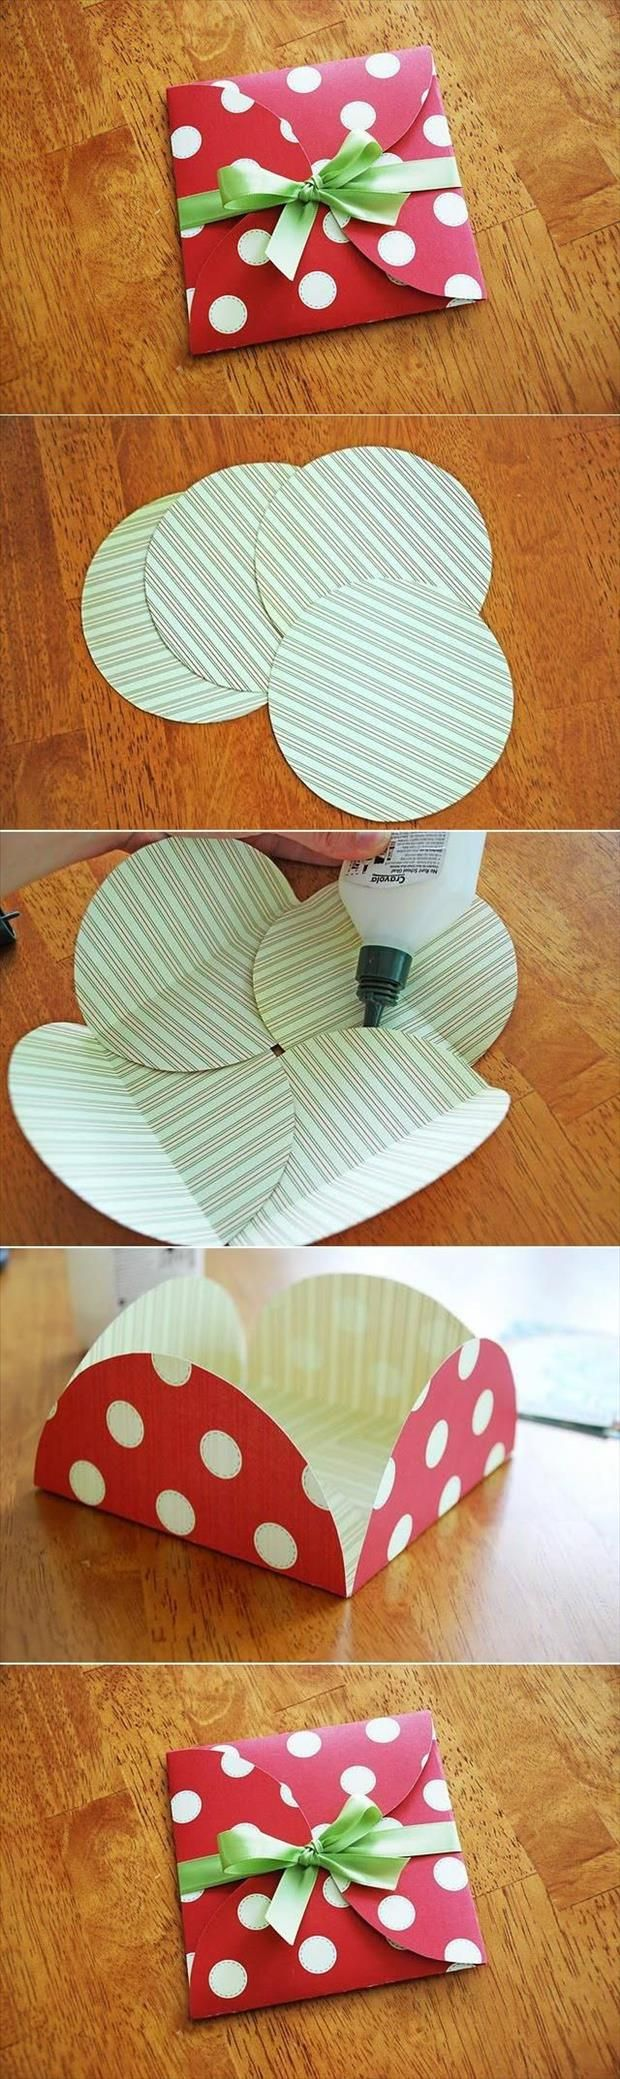 Simple Do It Yourself Craft Ideas